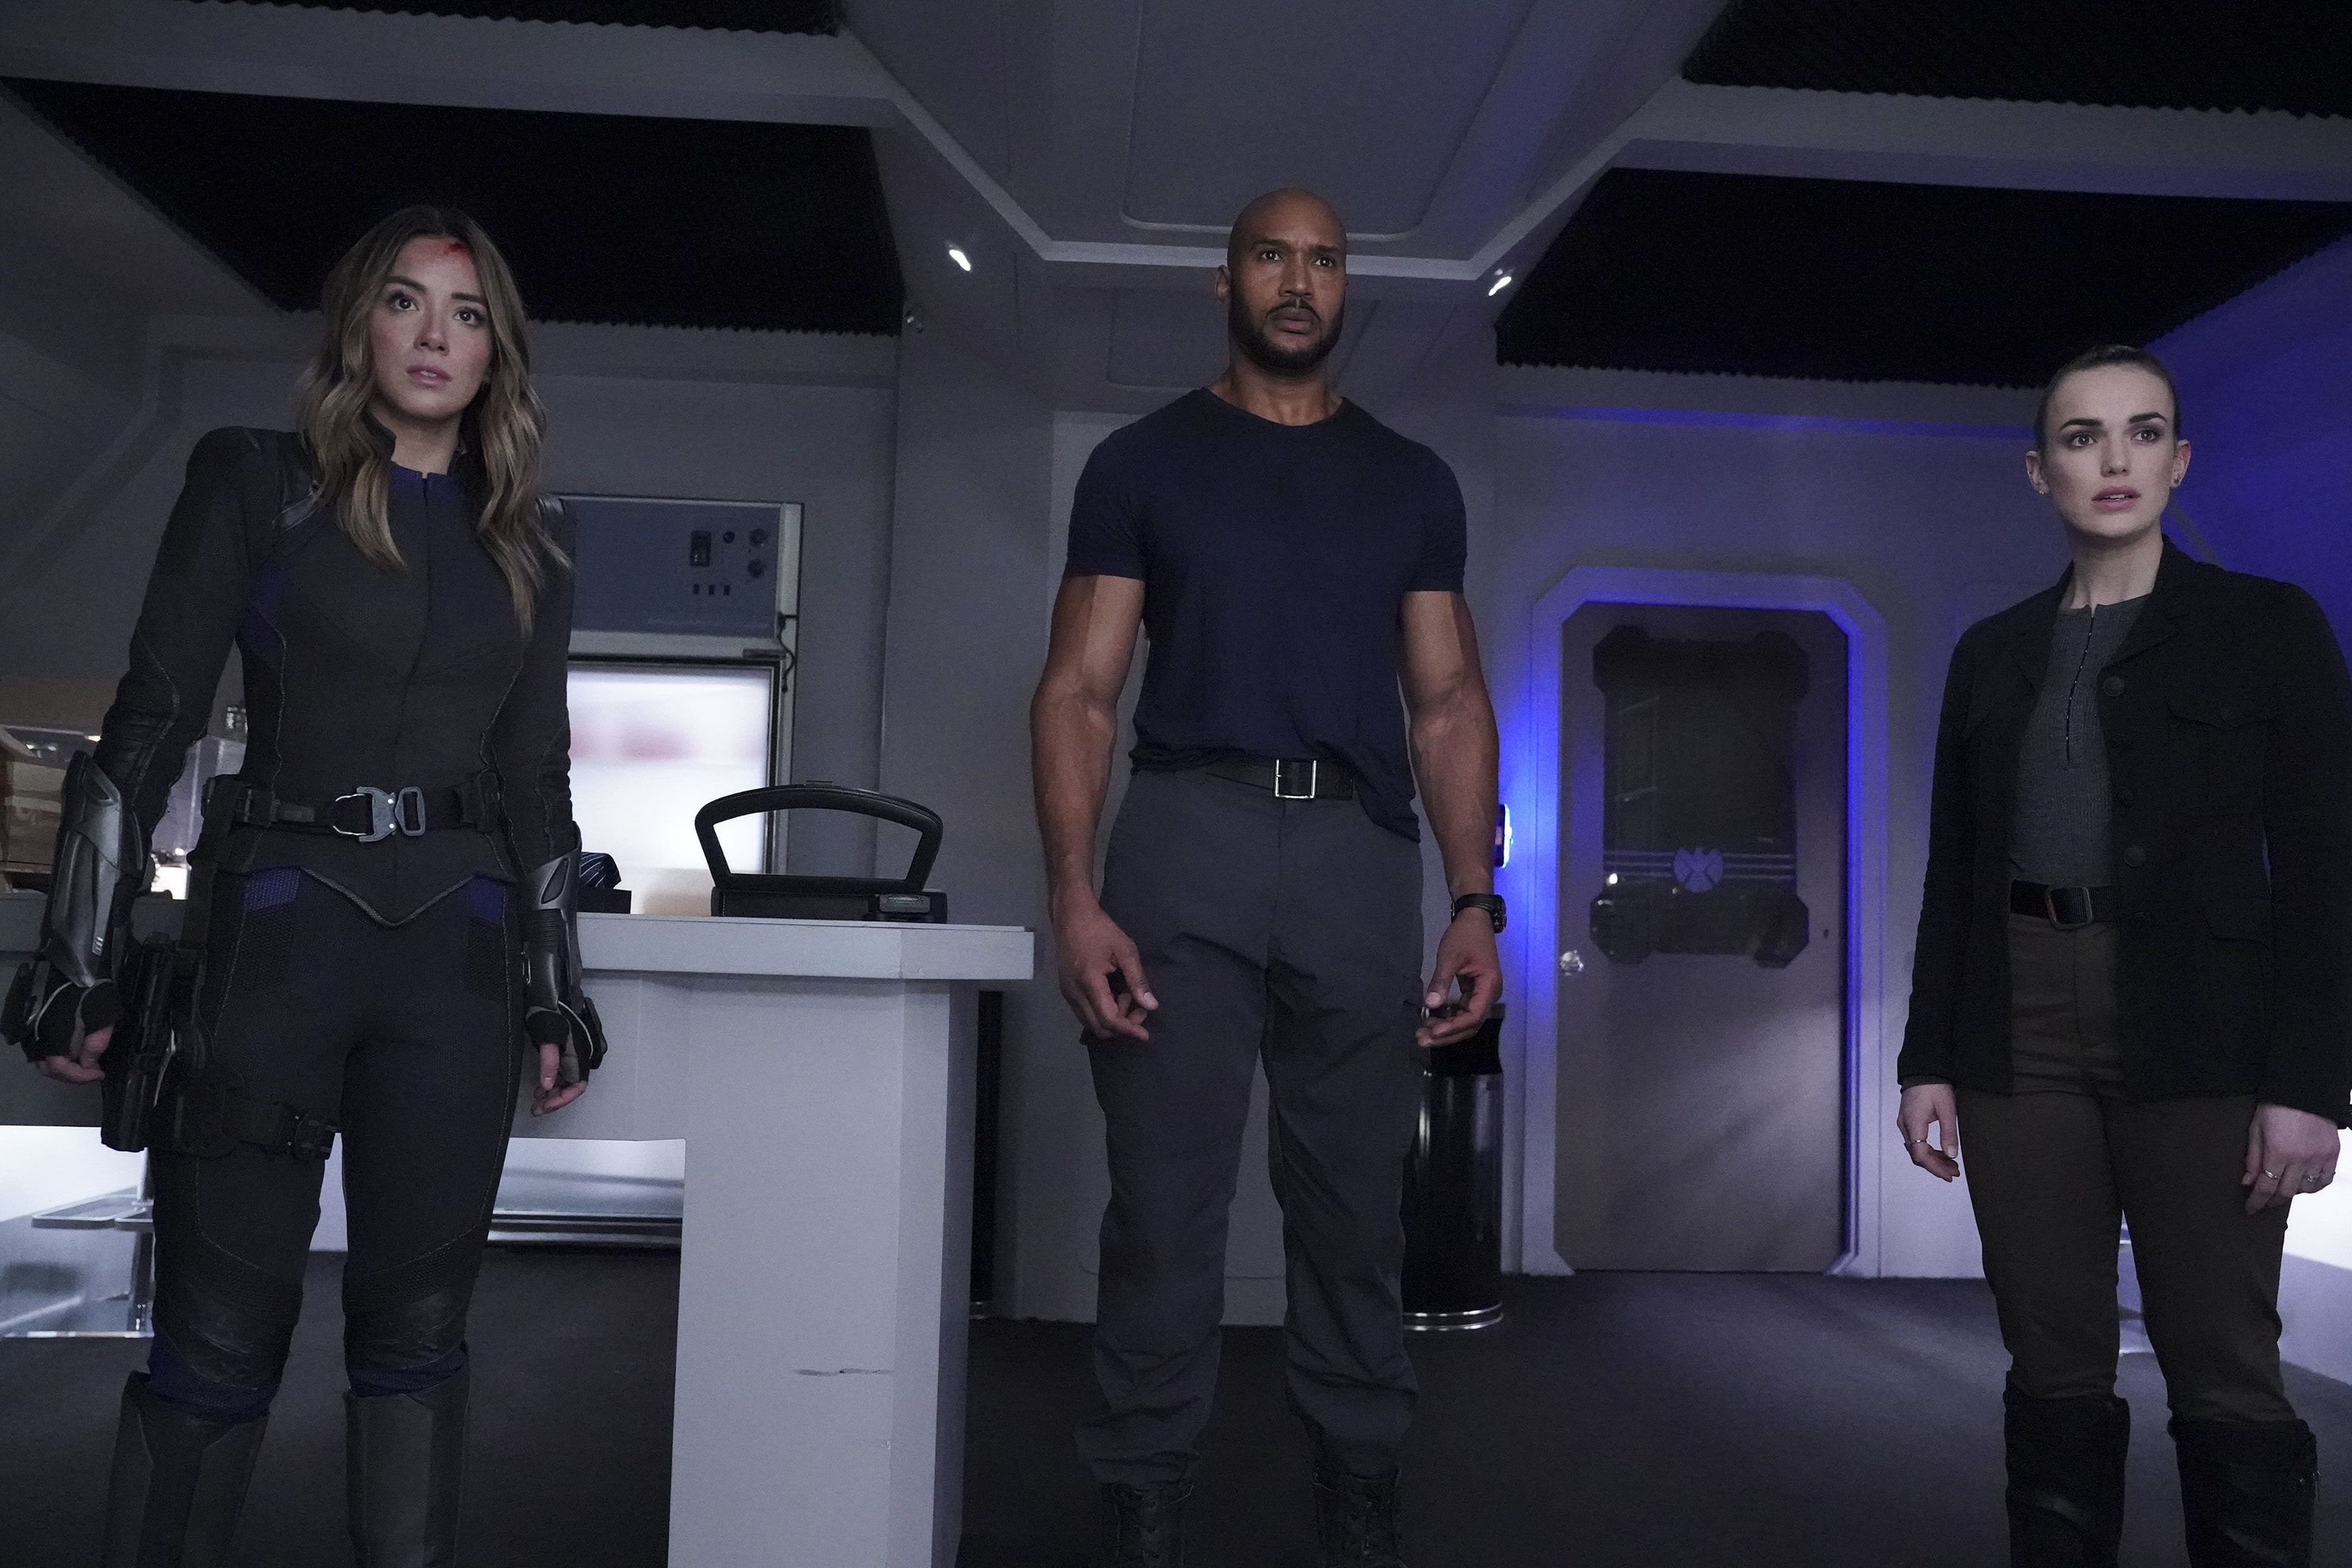 Marvel's Agents of S.H.I.E.L.D. Season 6 13